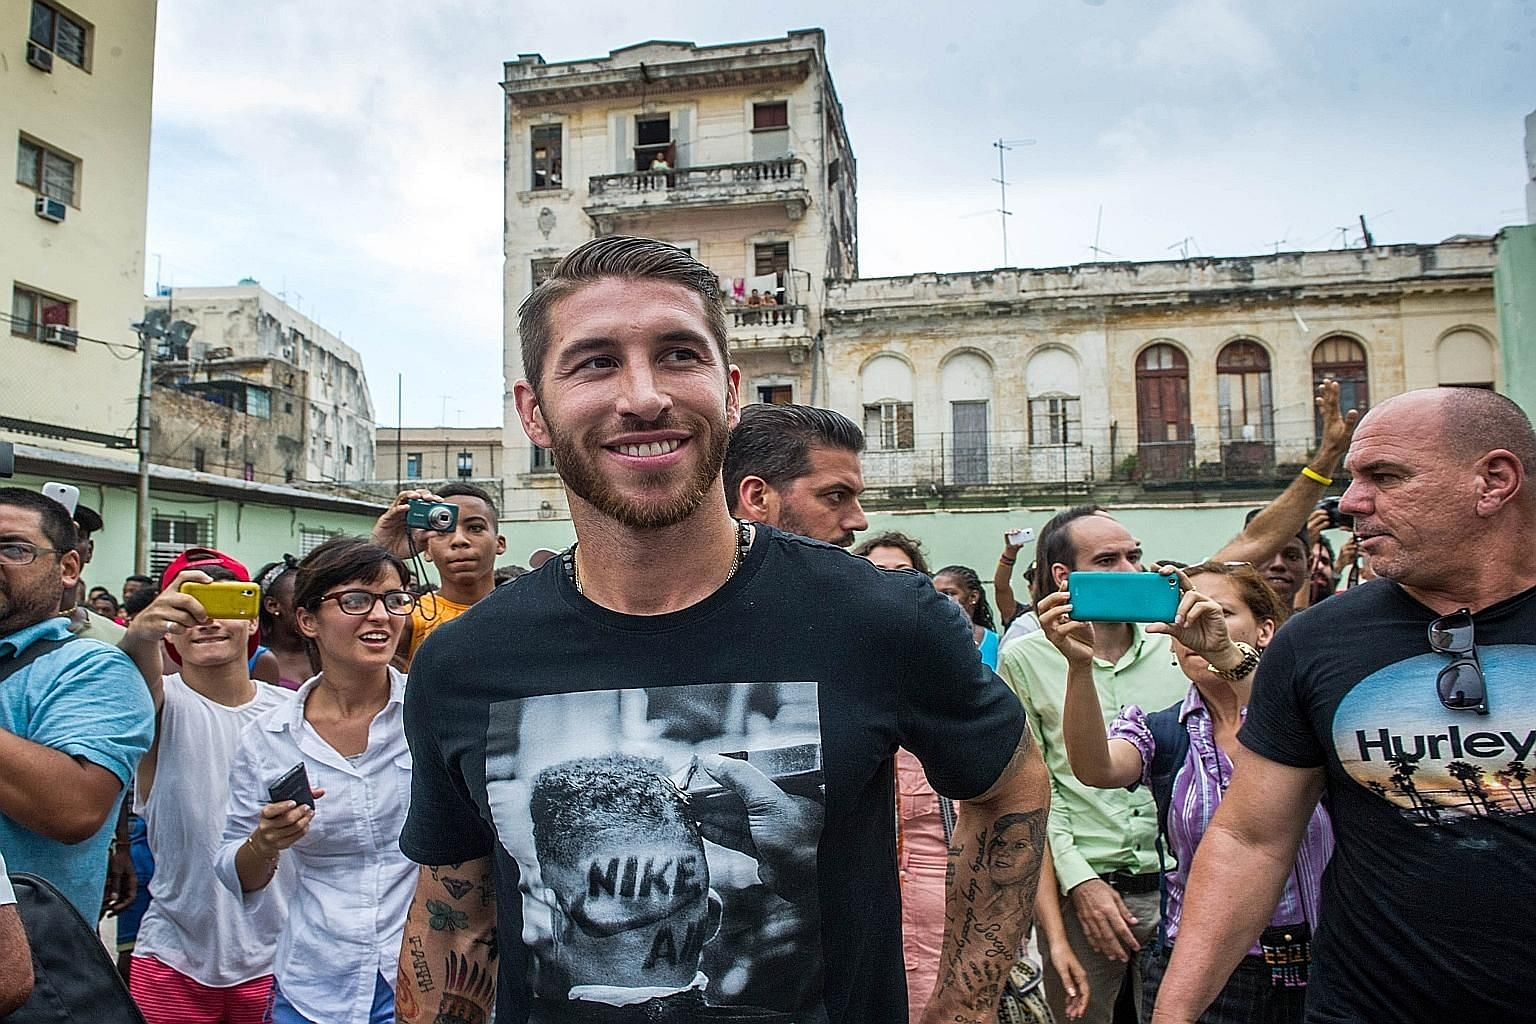 Real Madrid player Sergio Ramos upon his arrival in Havana on June 16. He was in Cuba as Unicef ambassador and played a modified game with children on an outdoor hard court. Negotiations on a contract extension have been at an impasse for months, wit